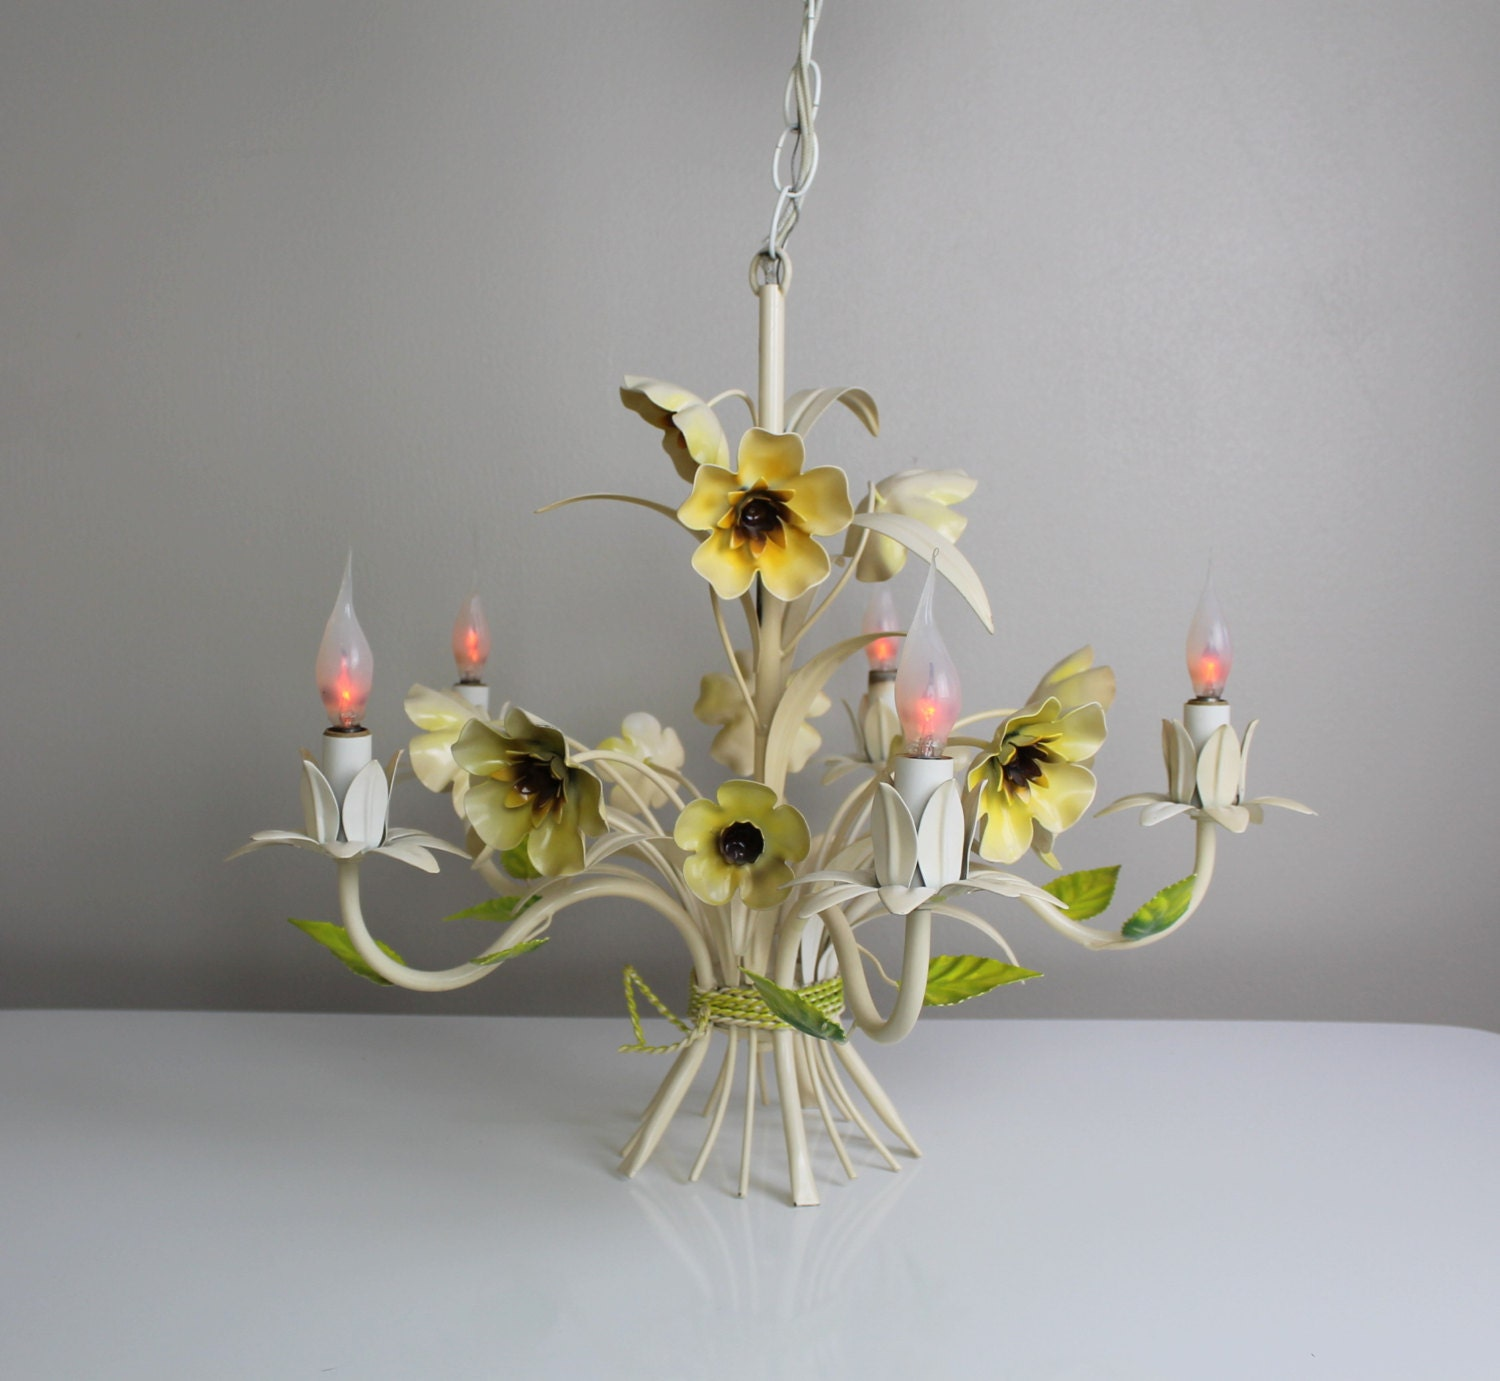 Vintage italian tole chandelier vase with flowers and leaves zoom arubaitofo Image collections